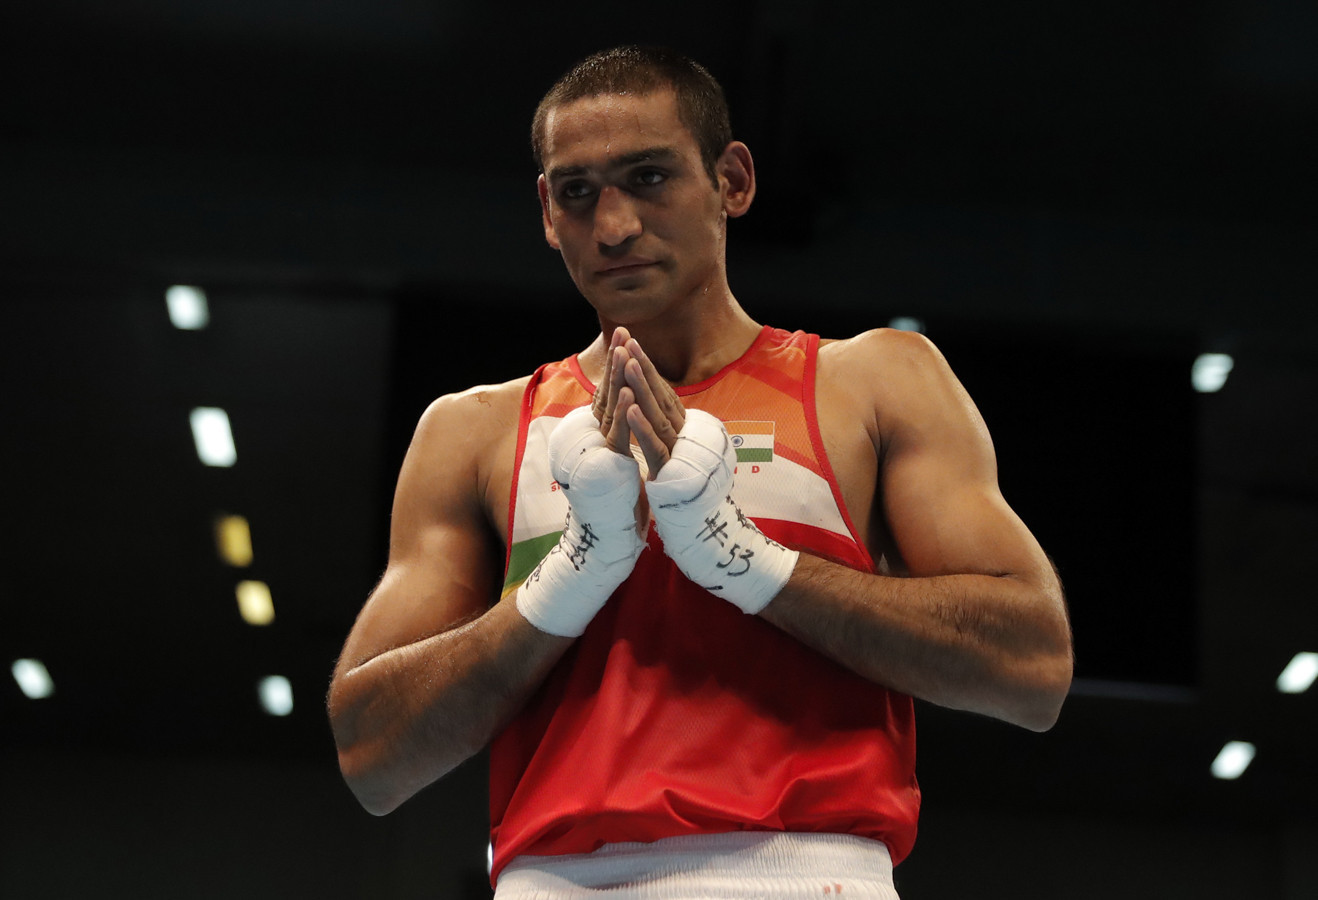 India has so far qualified nine boxers for Tokyo 2020 ©Road to Tokyo